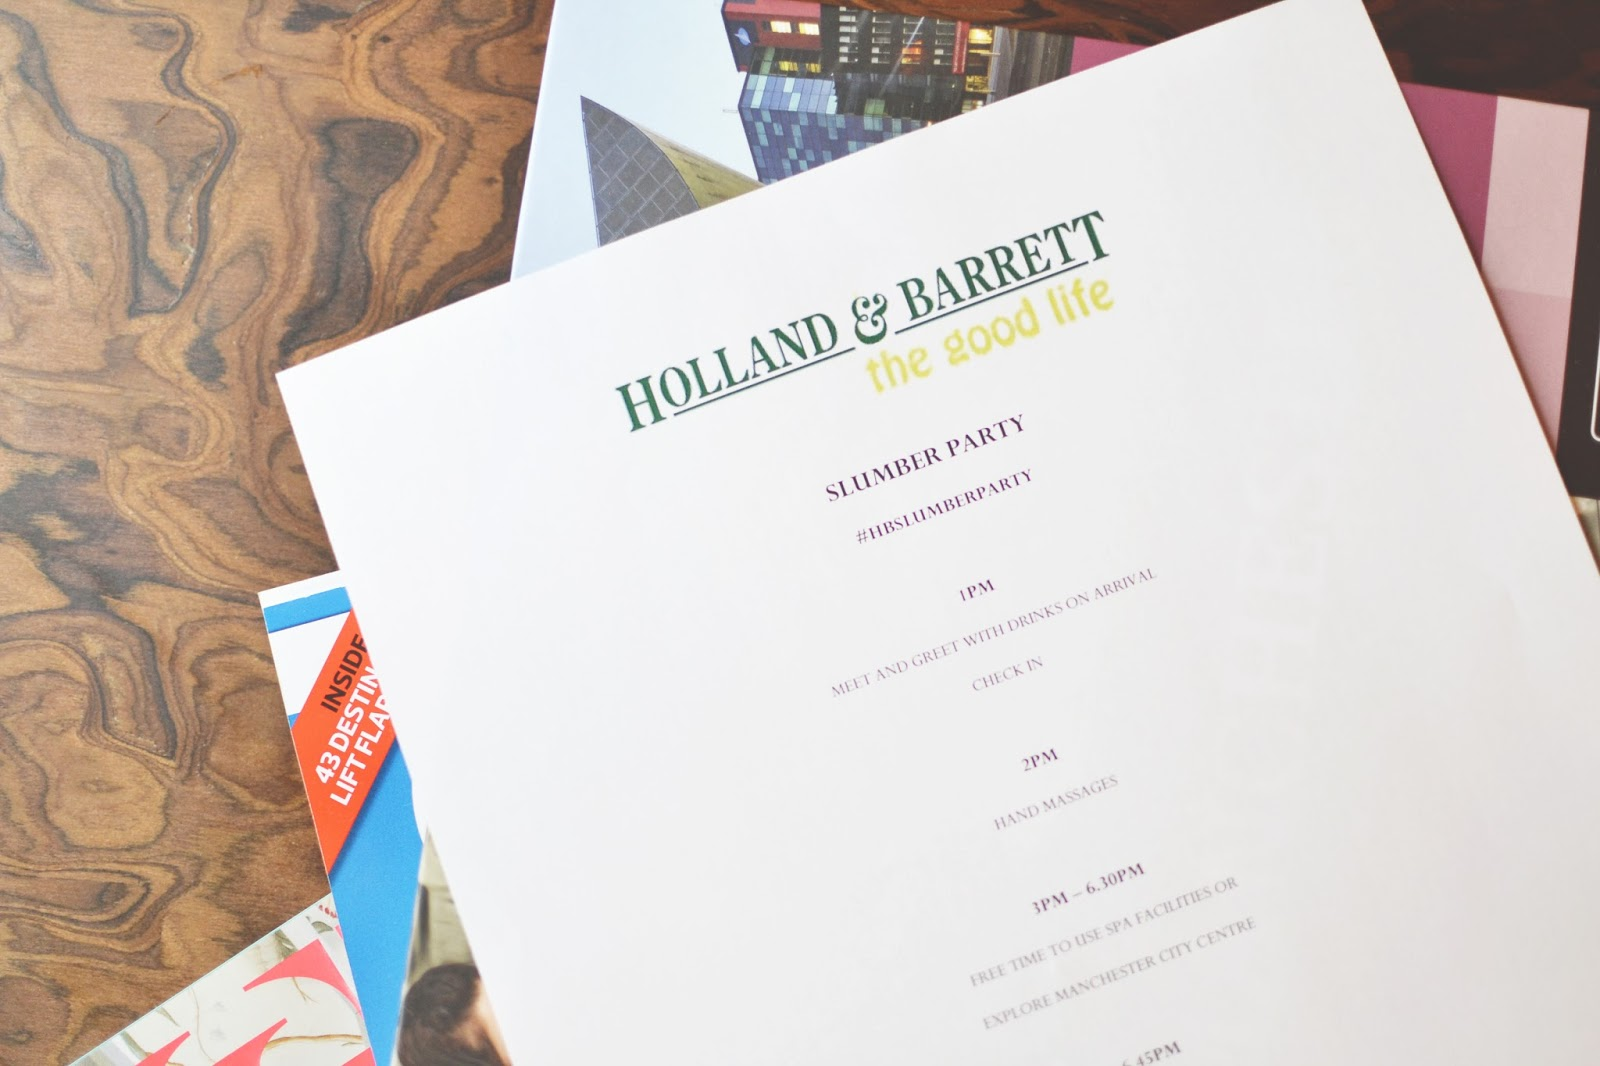 holland and barrett blogger event